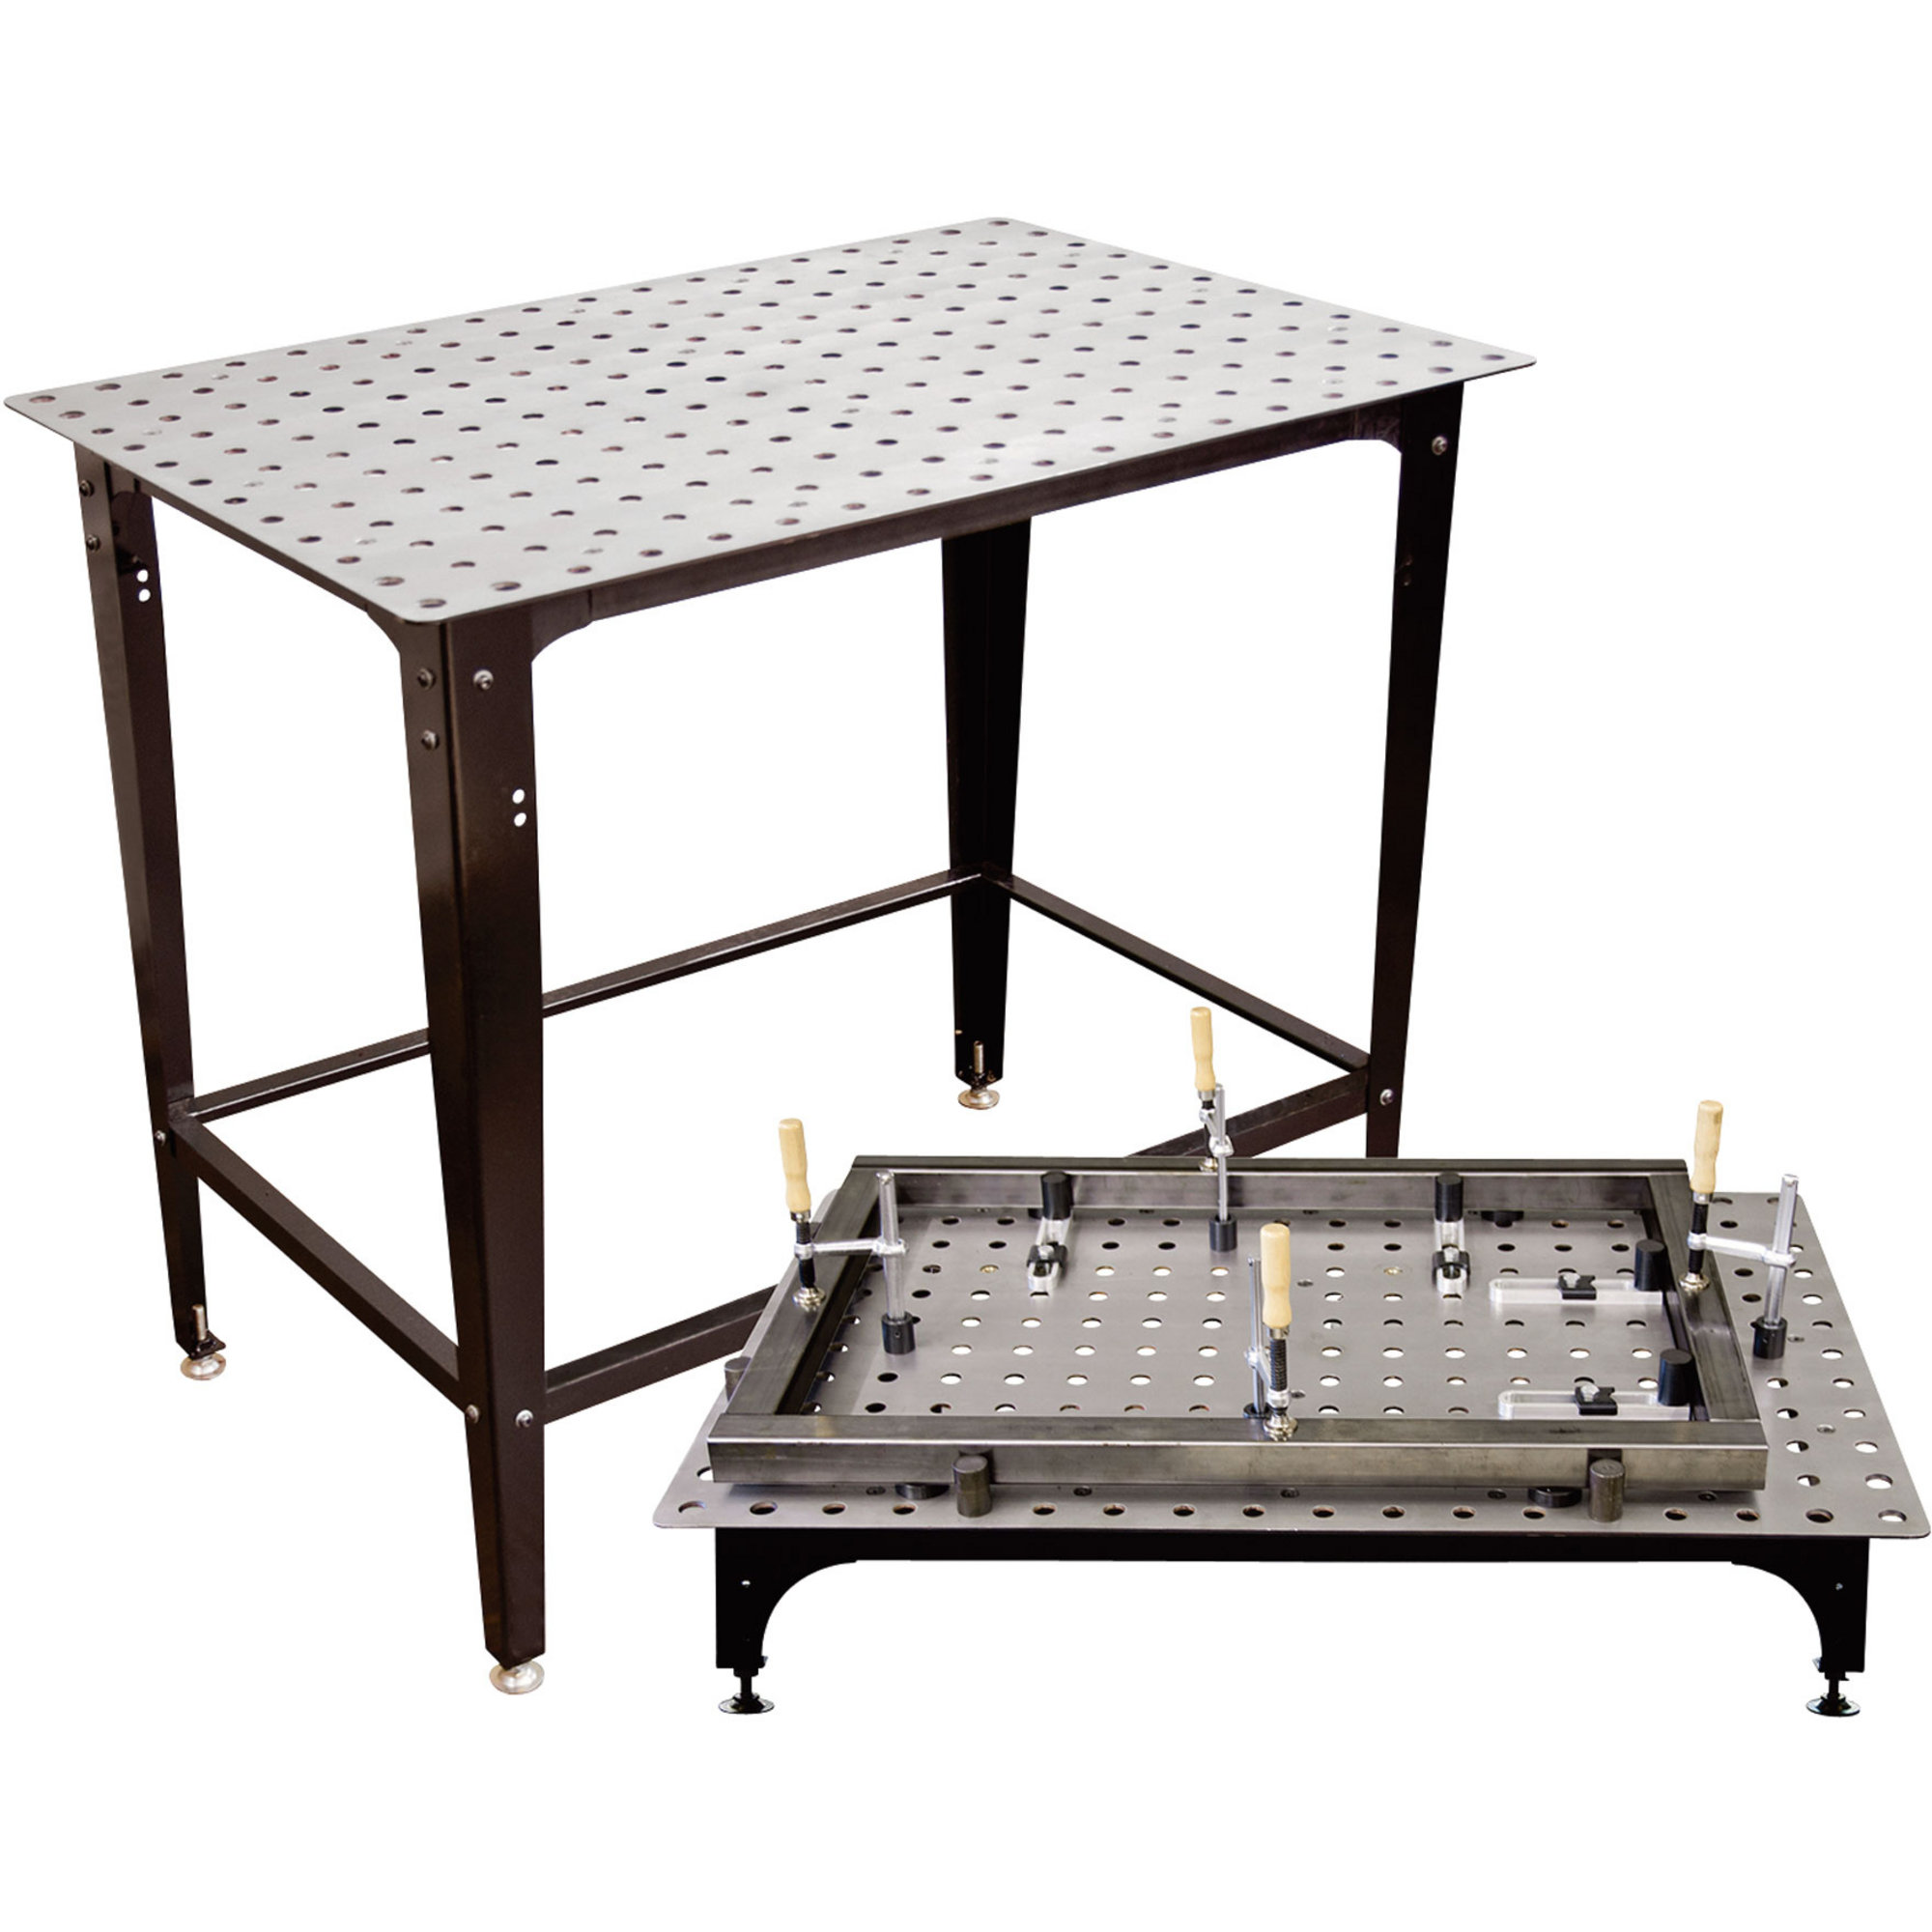 Metal Table Welding Tables Industrial Metal Supply